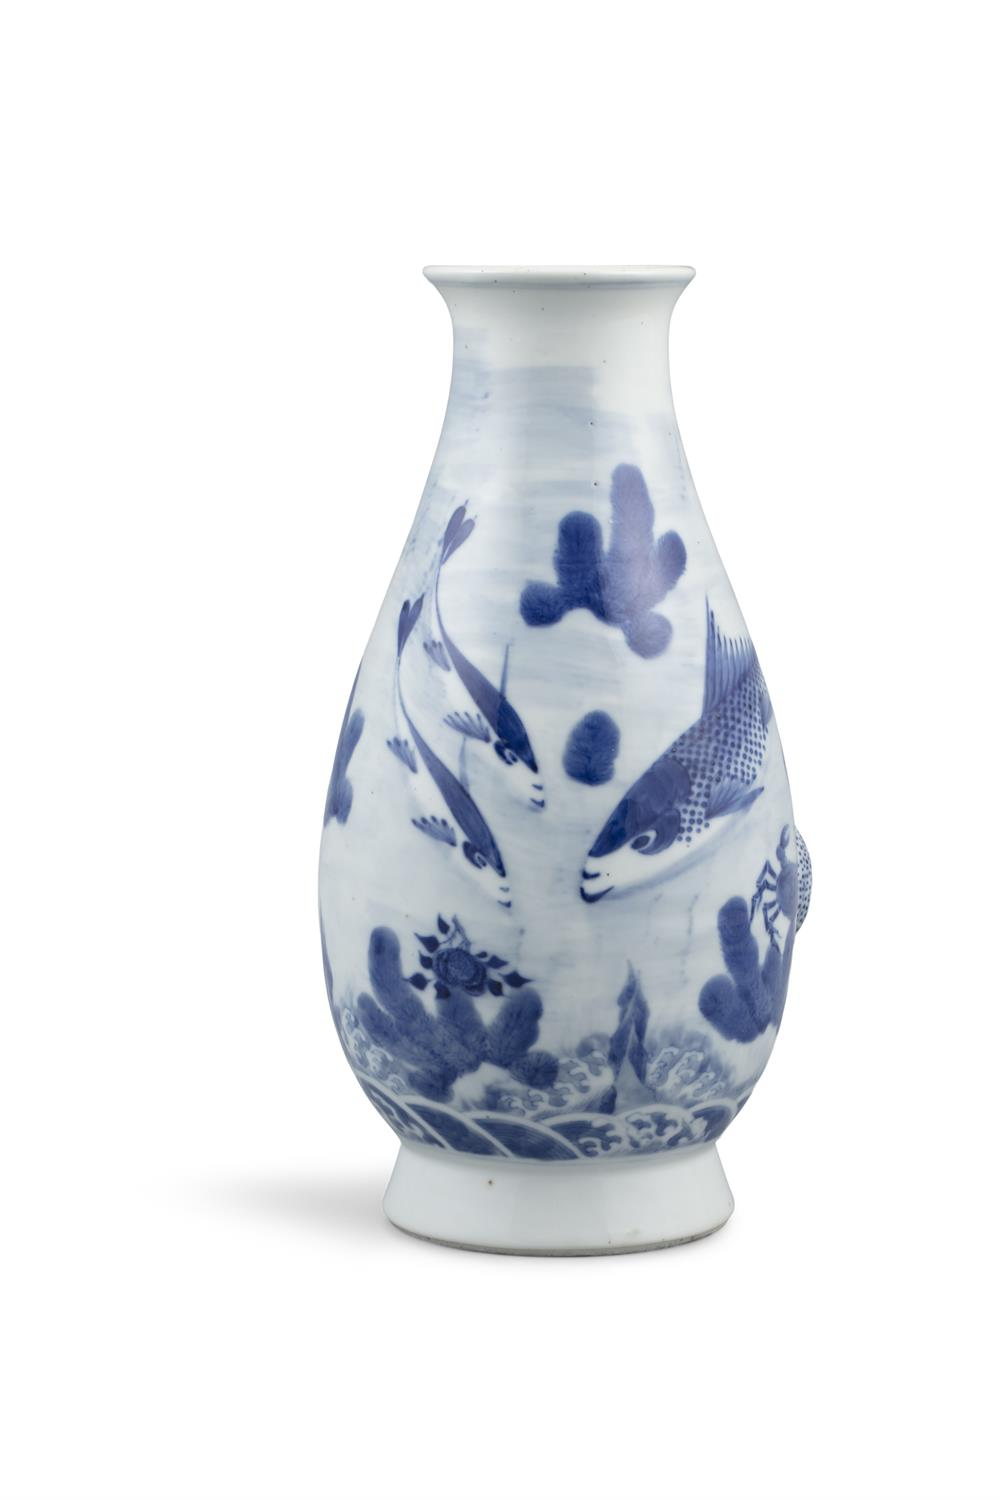 A BLUE AND WHITE 'CARPS AND CRAB' PORCELAIN BOTTLE VASE Most probably Japan, Meiji to Showa period - Image 4 of 6